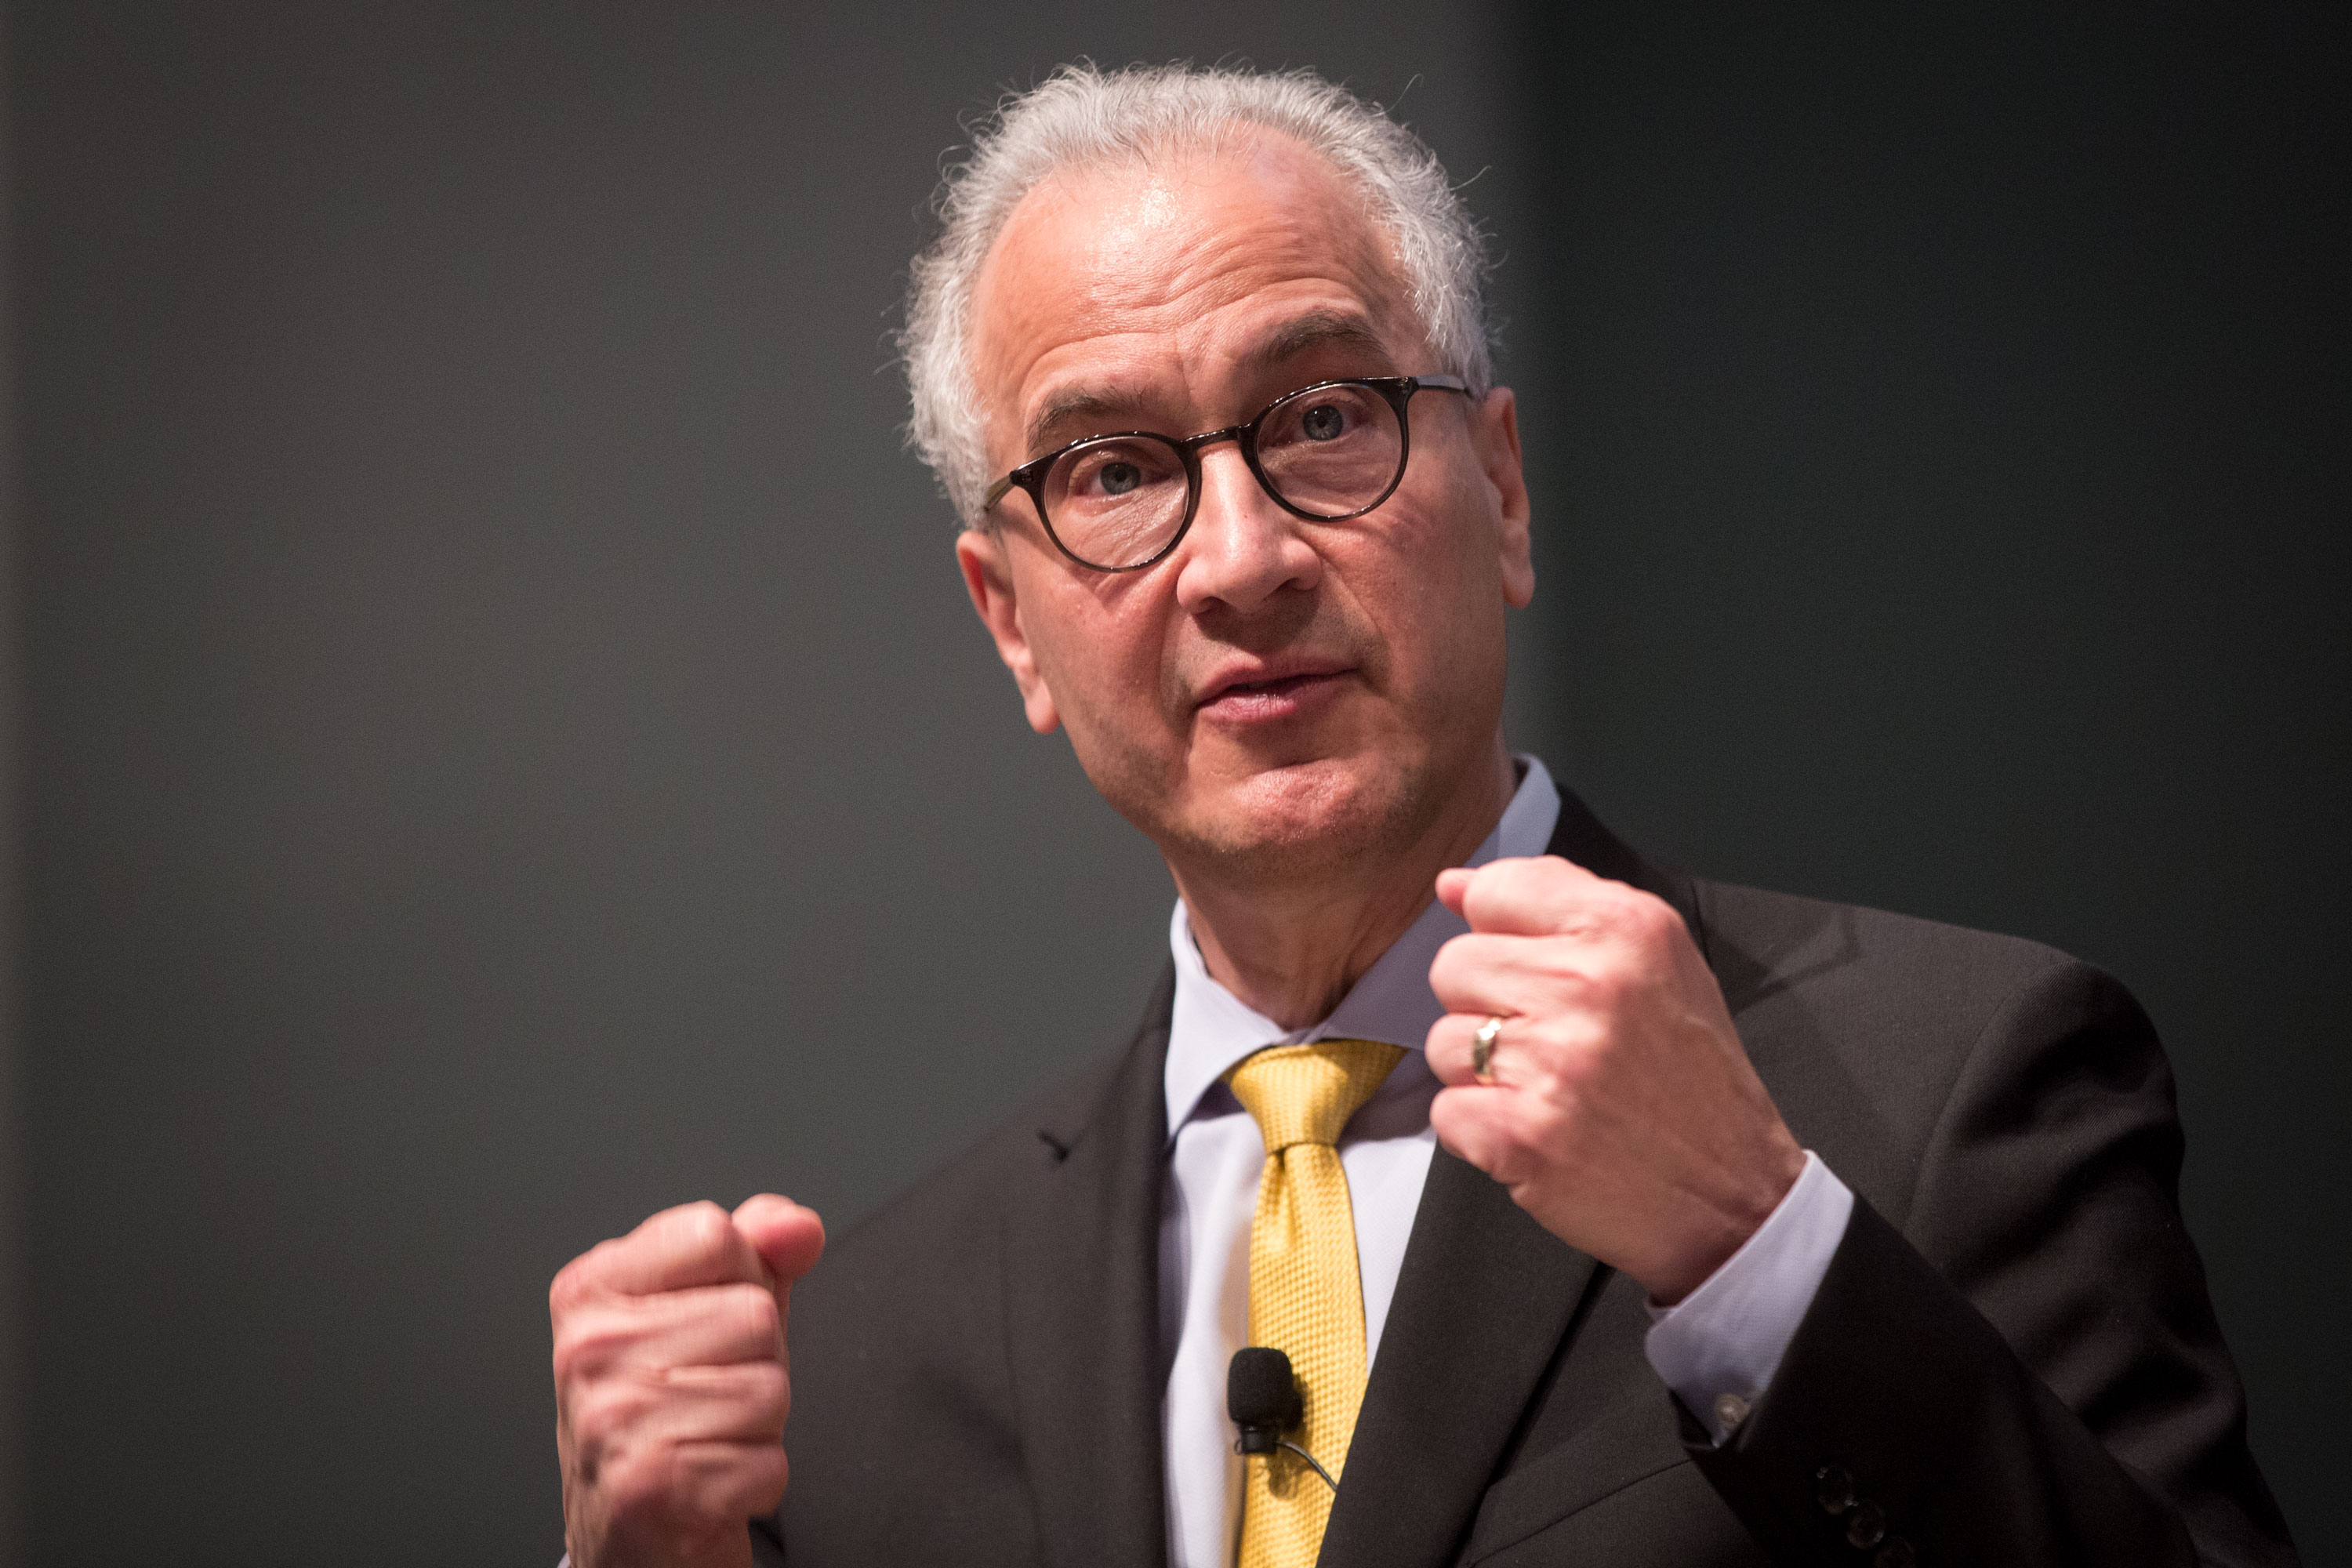 Mark Kennedy answers audience questions Wednesday April 24, 2019 at the CU Anschutz Medical Campus. Kennedy is the only finalist for the position of president at the University of Colorado. He's visiting all the campuses in the university system.